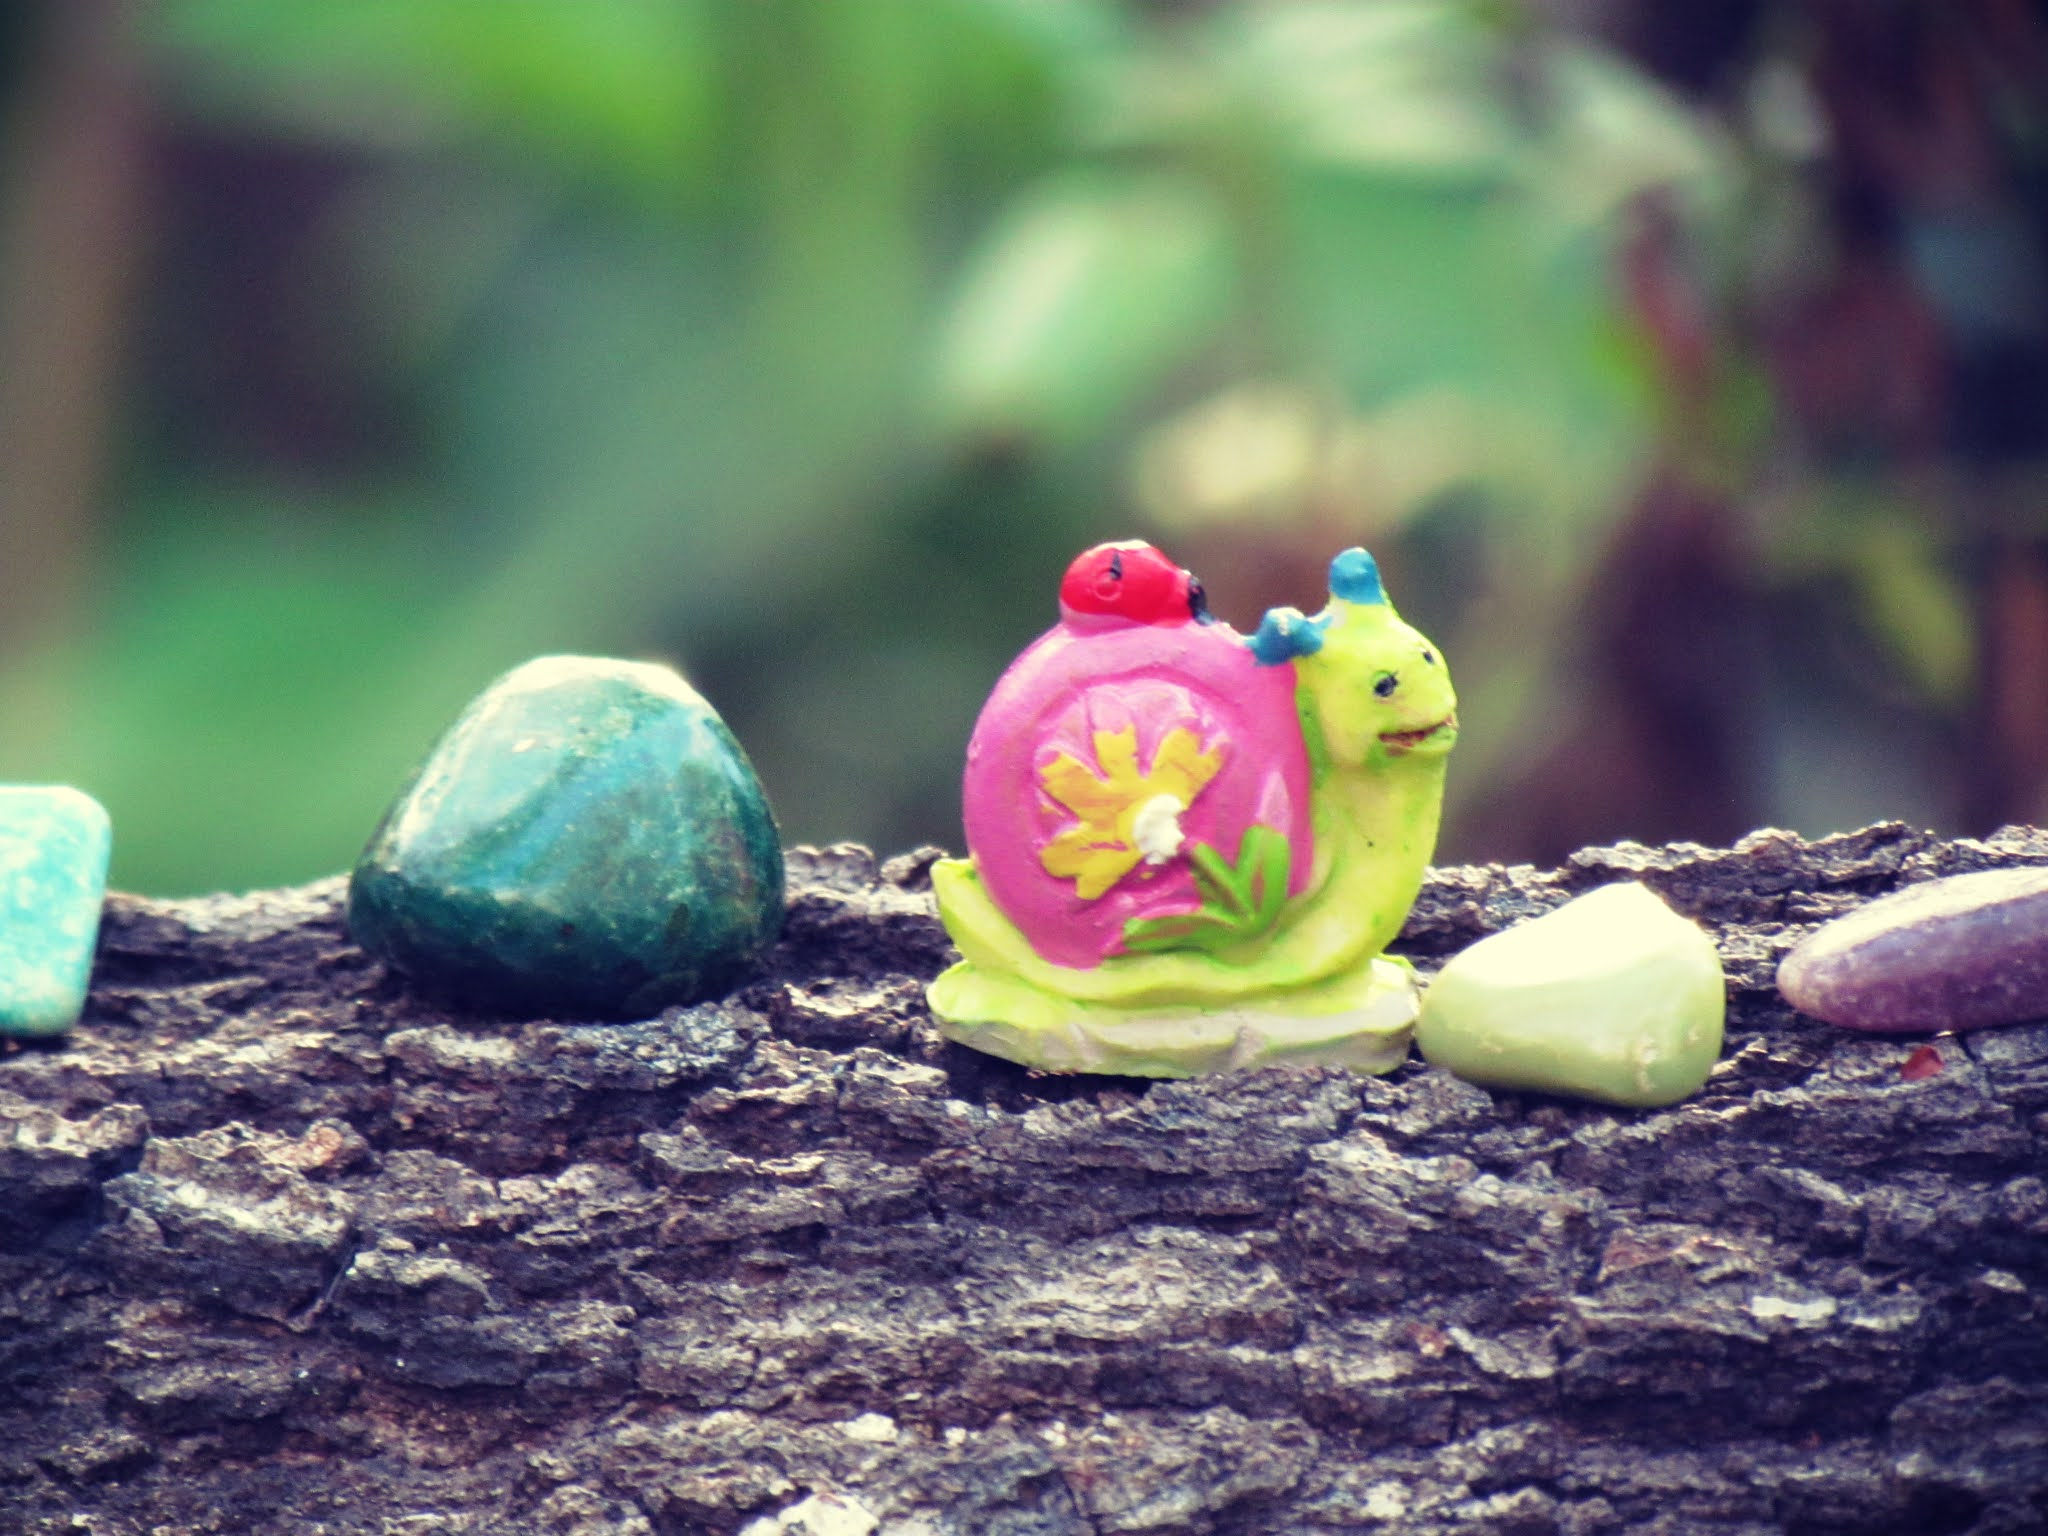 A snail toy figurine on a wooden log in an emerald green forest surrounded by healing crystals and forage mushrooms